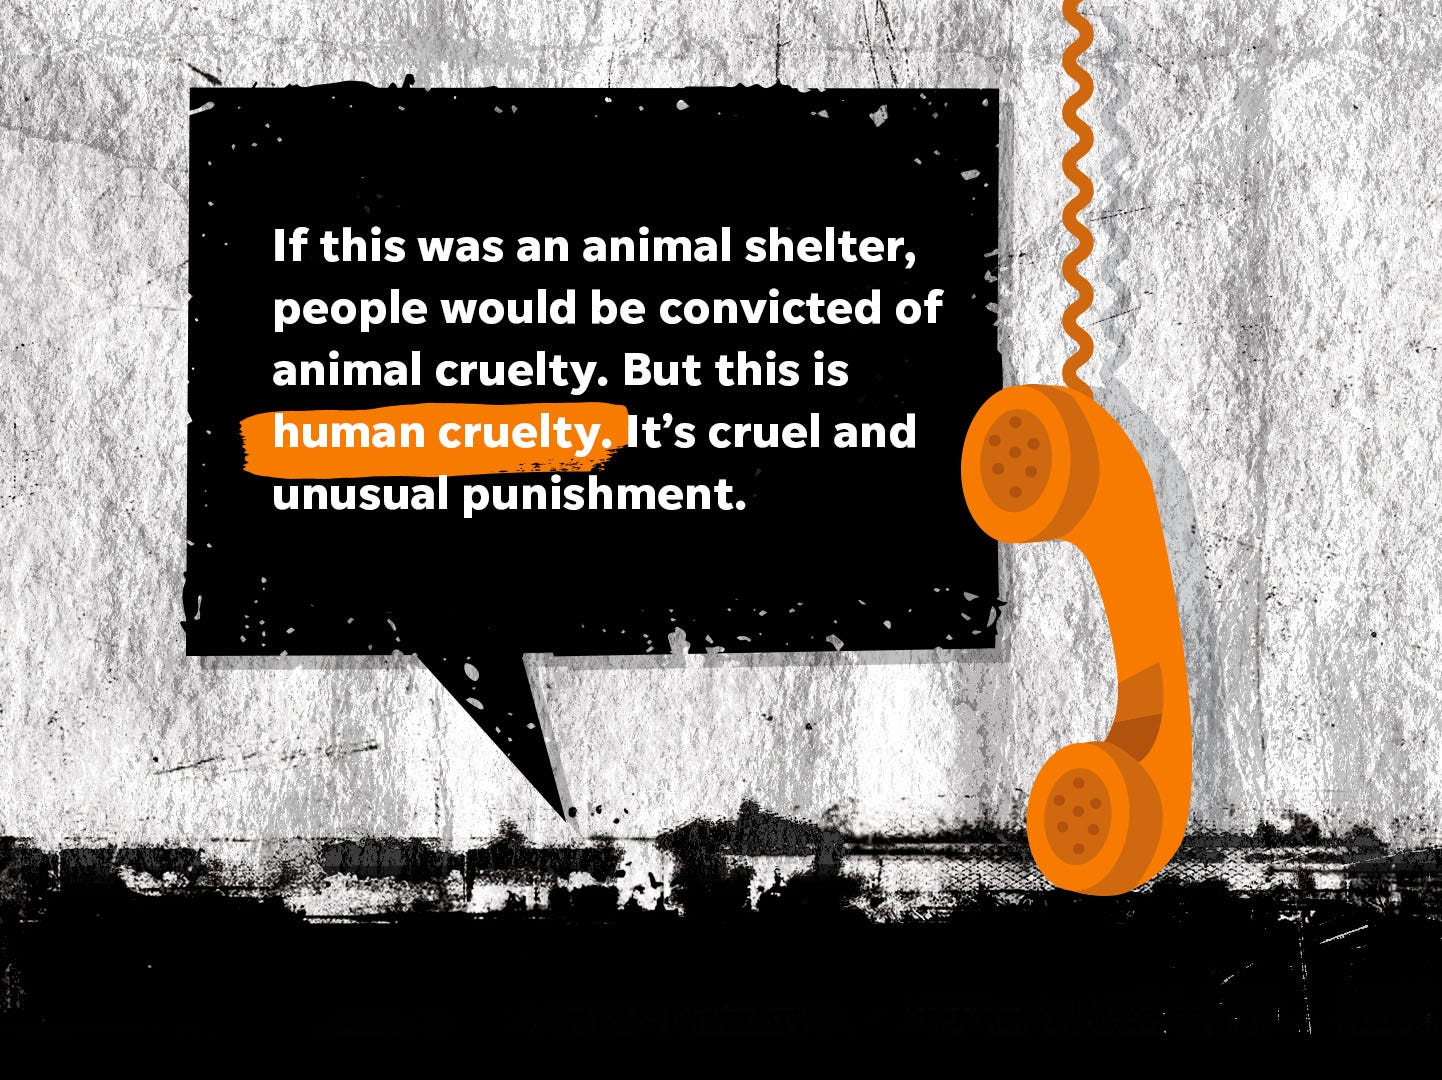 """""""If this was an animal shelter, people would be convicted of animal cruelty. But this is human cruelty. It's cruel and unusual punishment."""""""